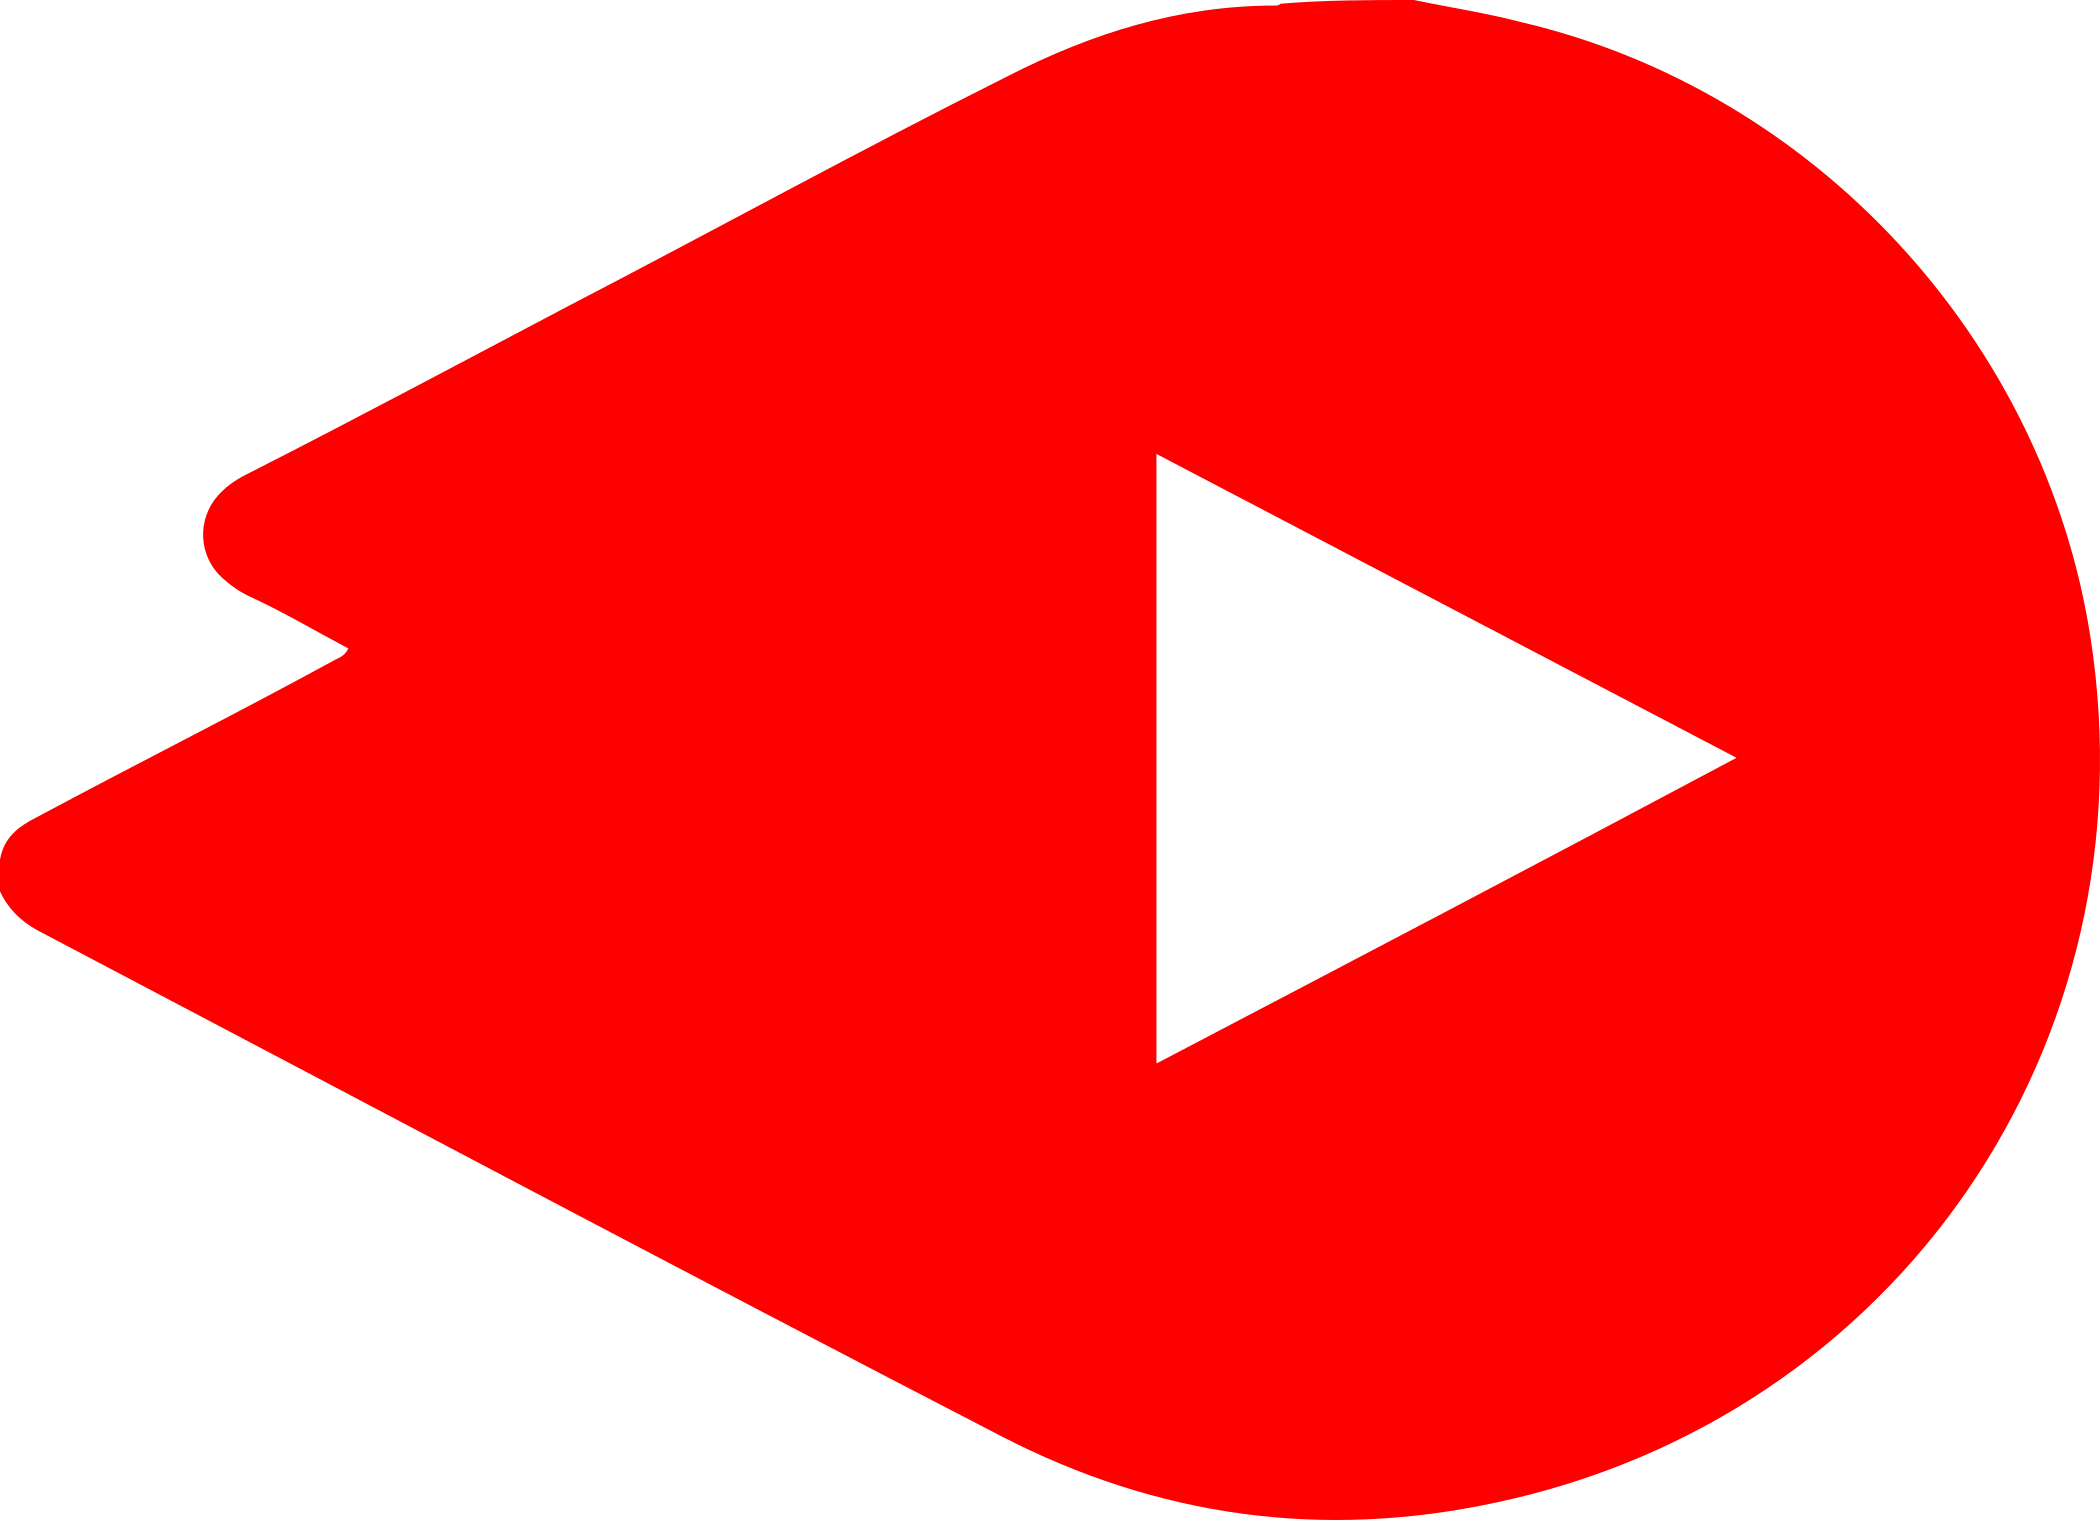 youtubegologo3 png download de logotipos